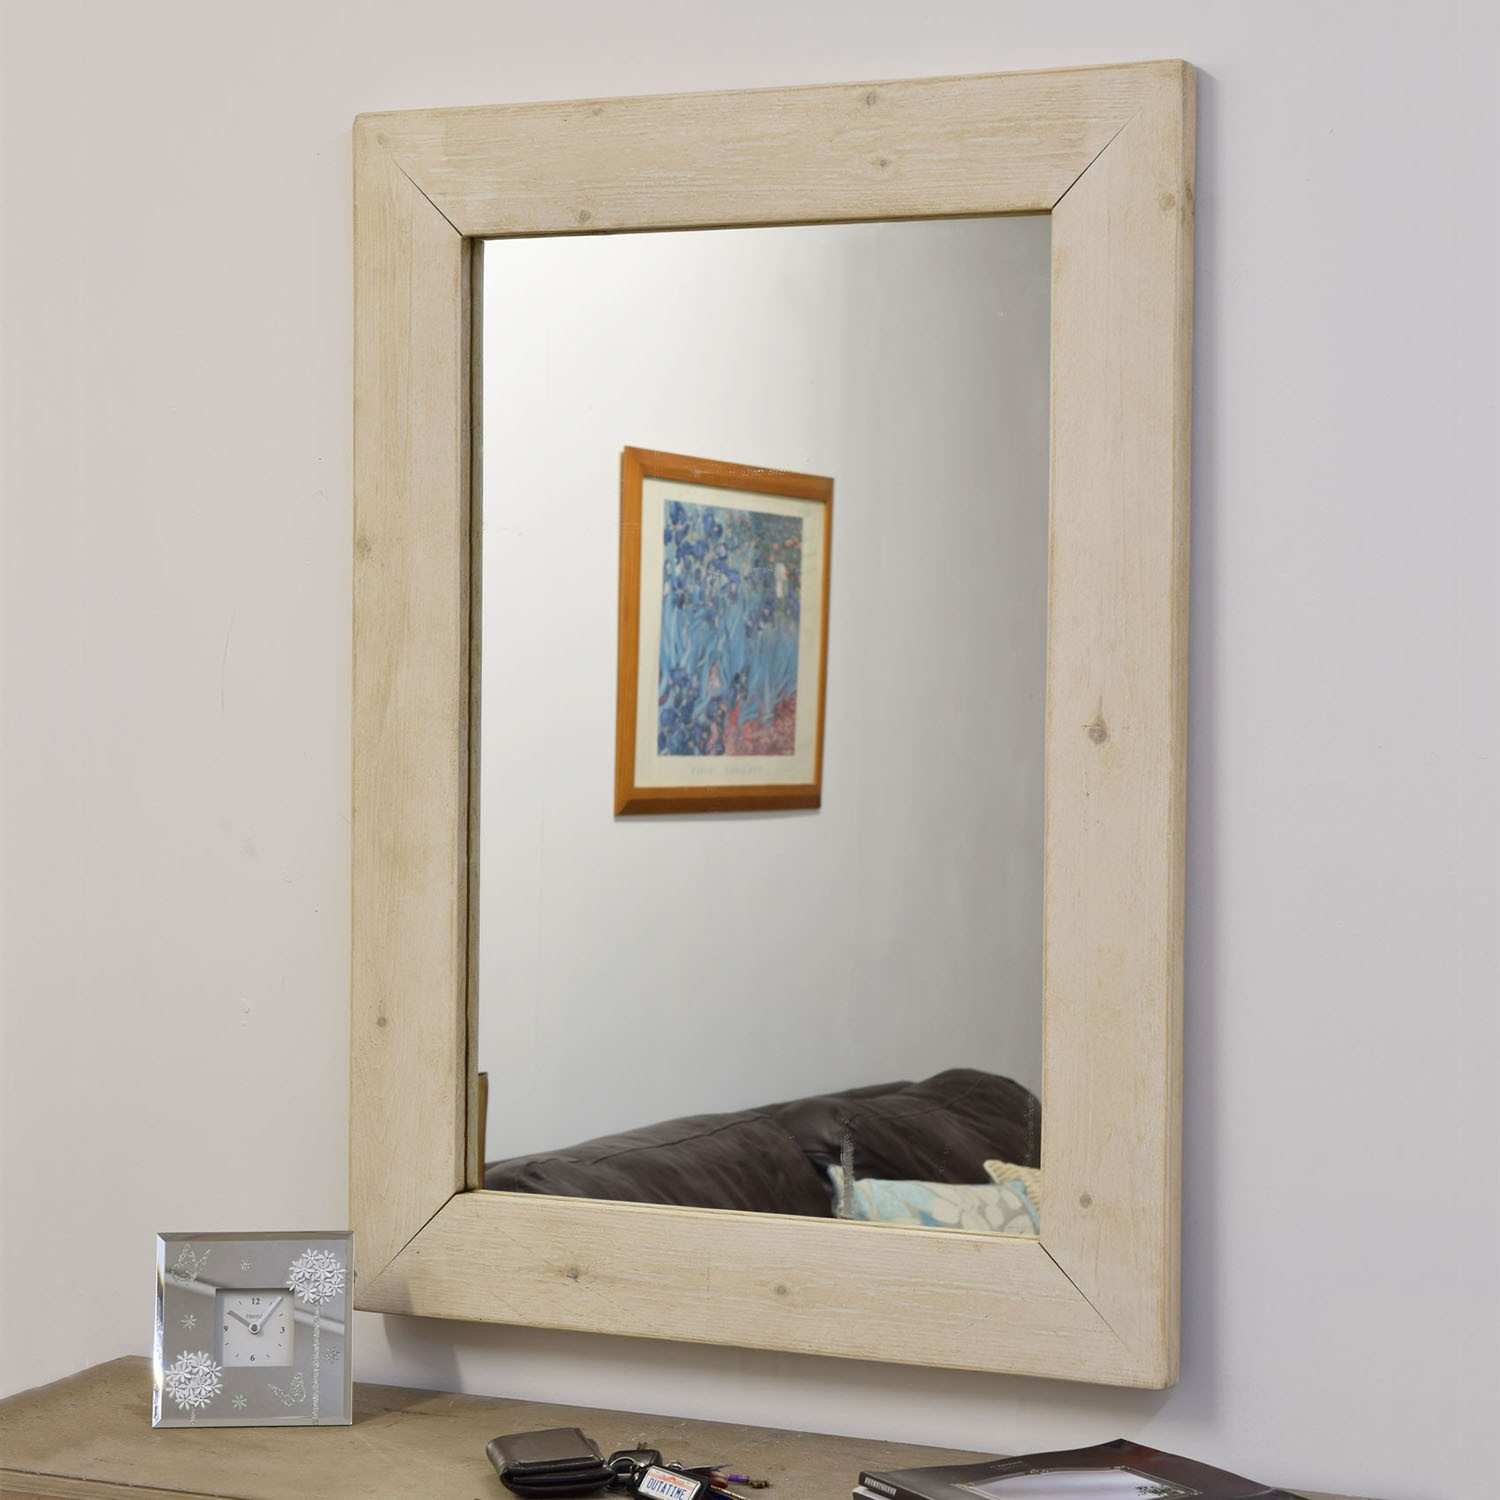 Milton Manor Farmhouse Lite 93x68cm Wall Mirror in Oak – Next Day